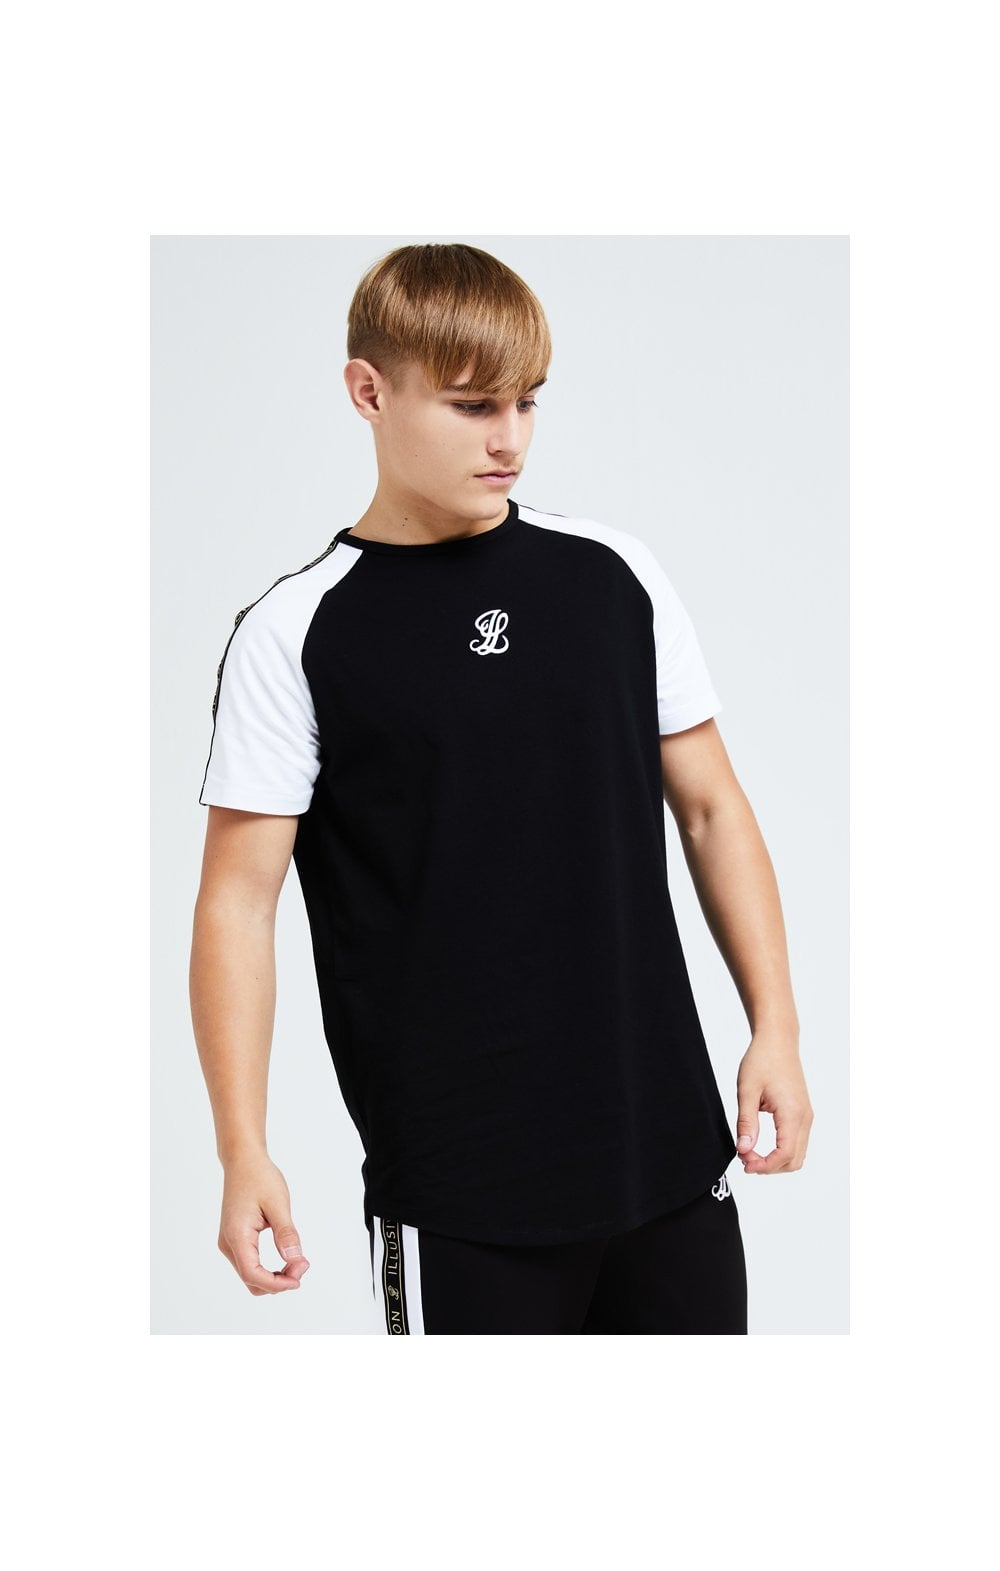 Load image into Gallery viewer, Illusive London Diverge Raglan Tee - Black Gold & White